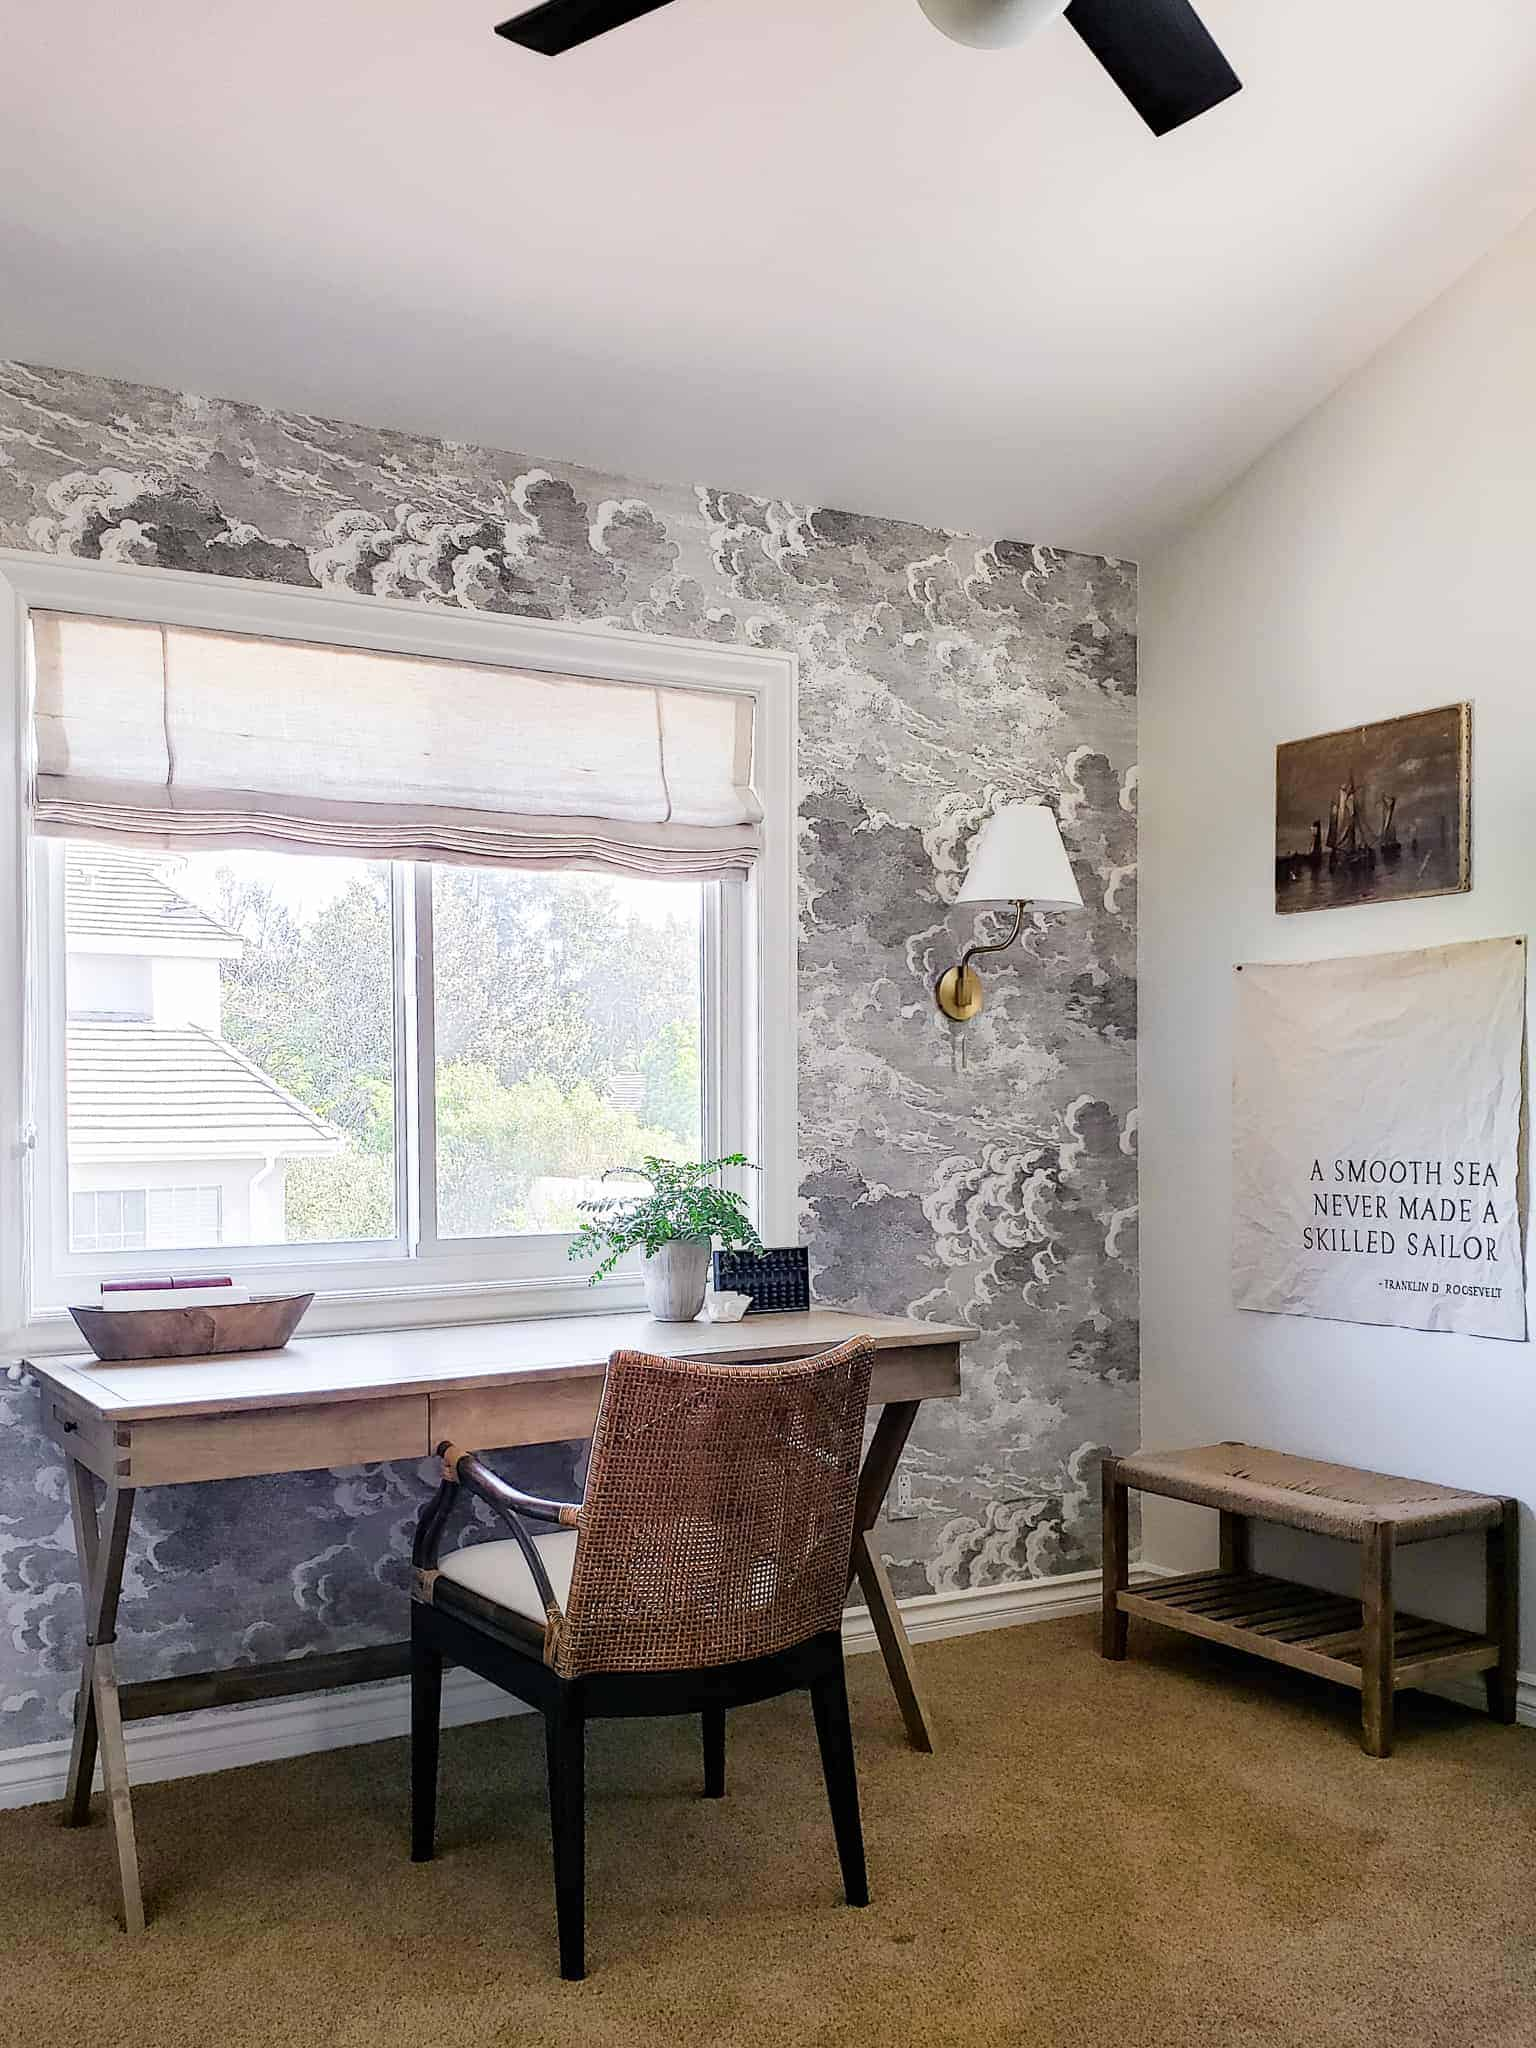 desk and chair in front of storm cloud wallpaper and window with shade